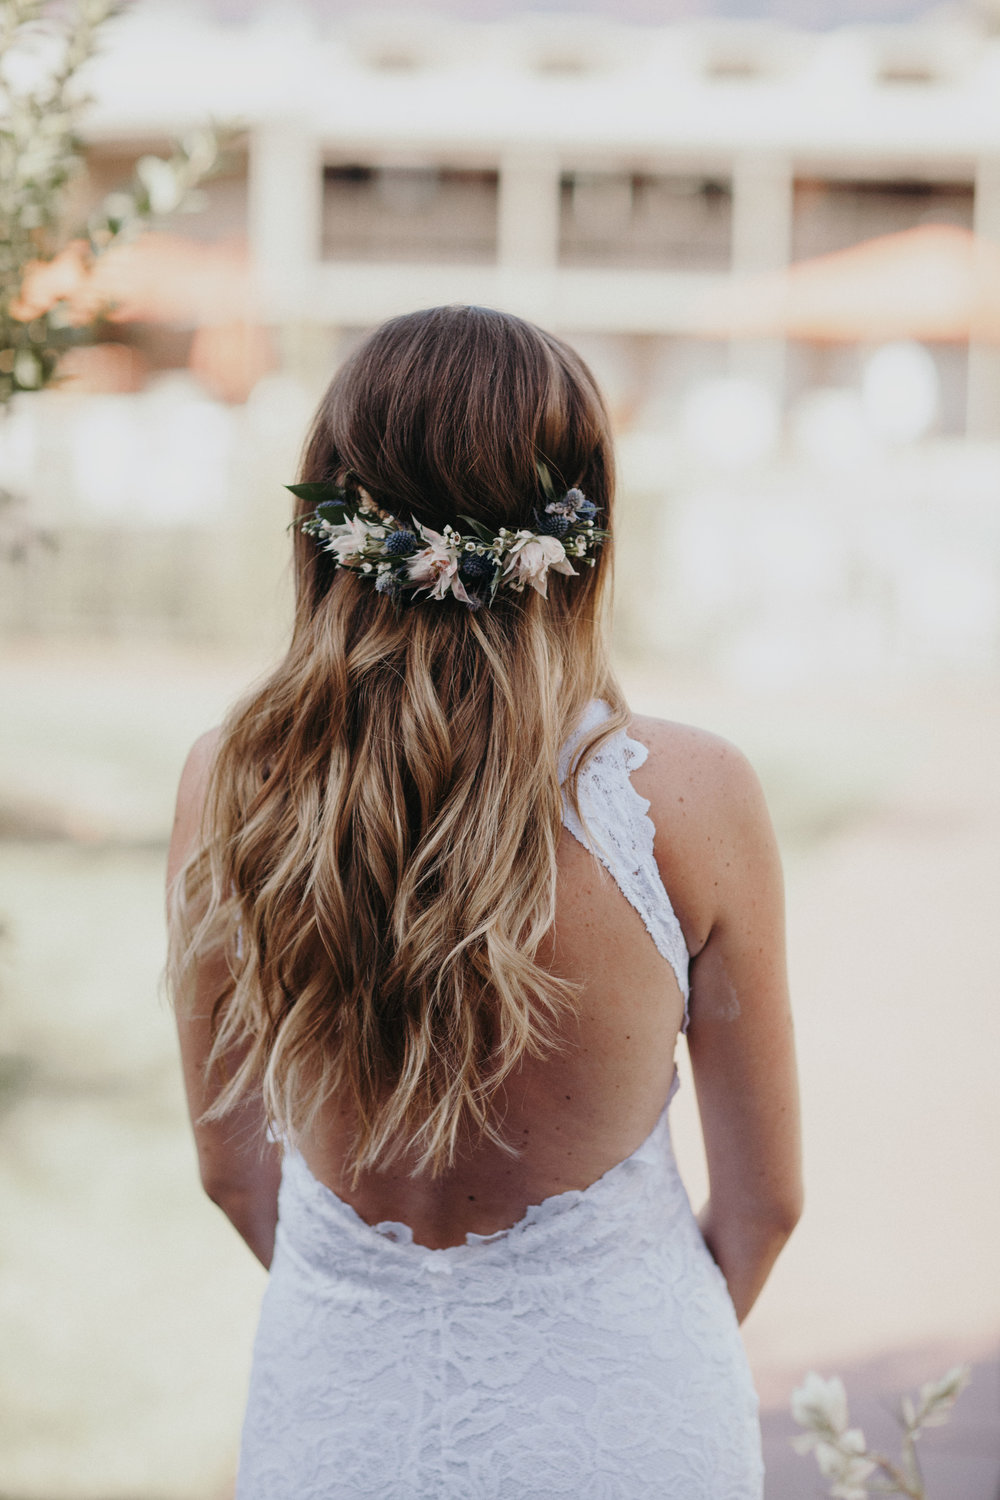 Sedona Wedding - Half Flower Crown Bridal Hair Inspiration